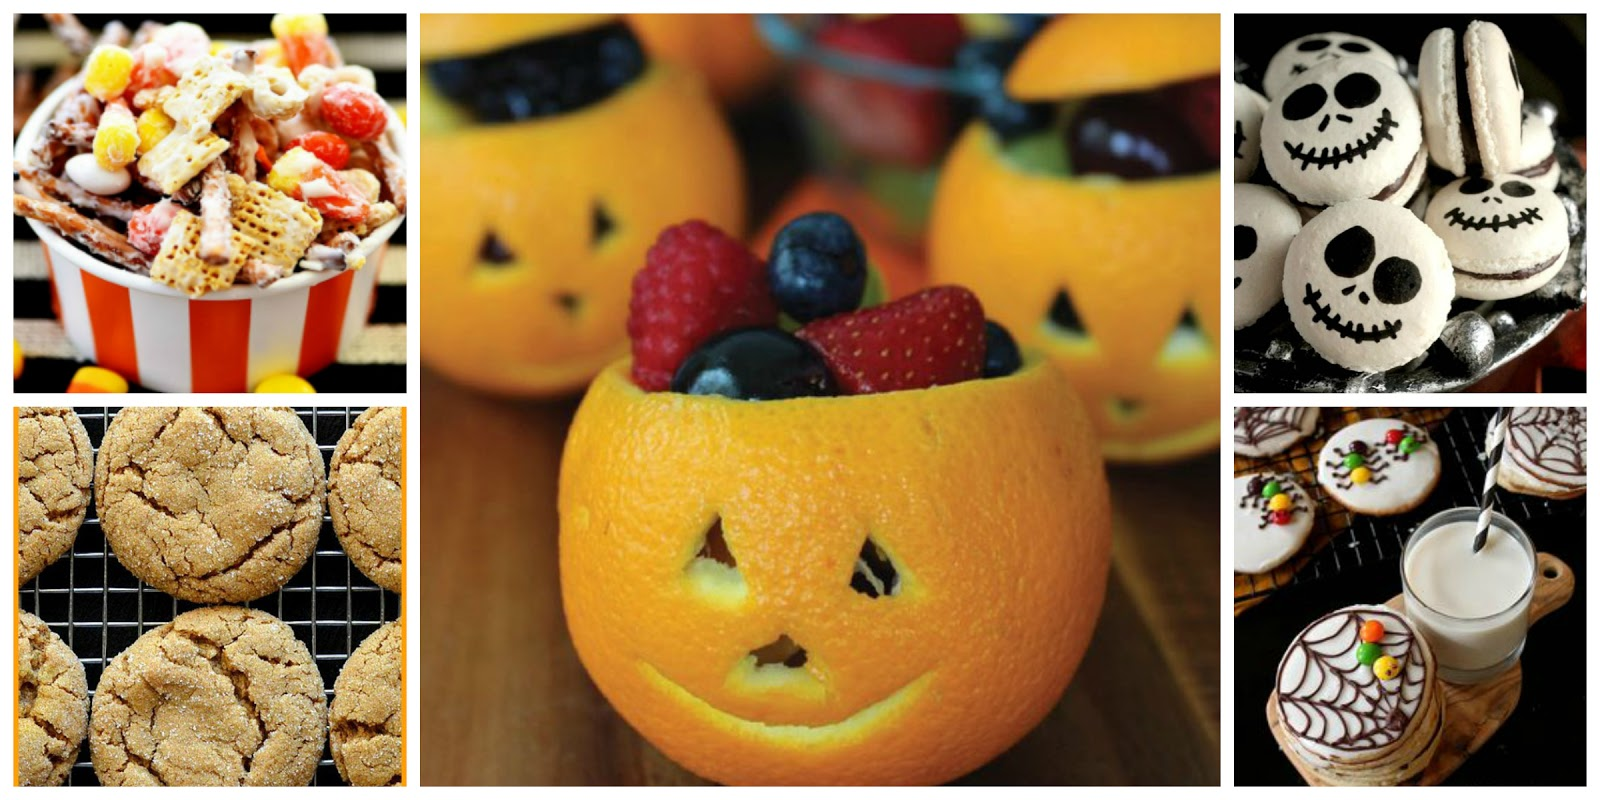 Don't Be Tricked! These Treats are Sweet!